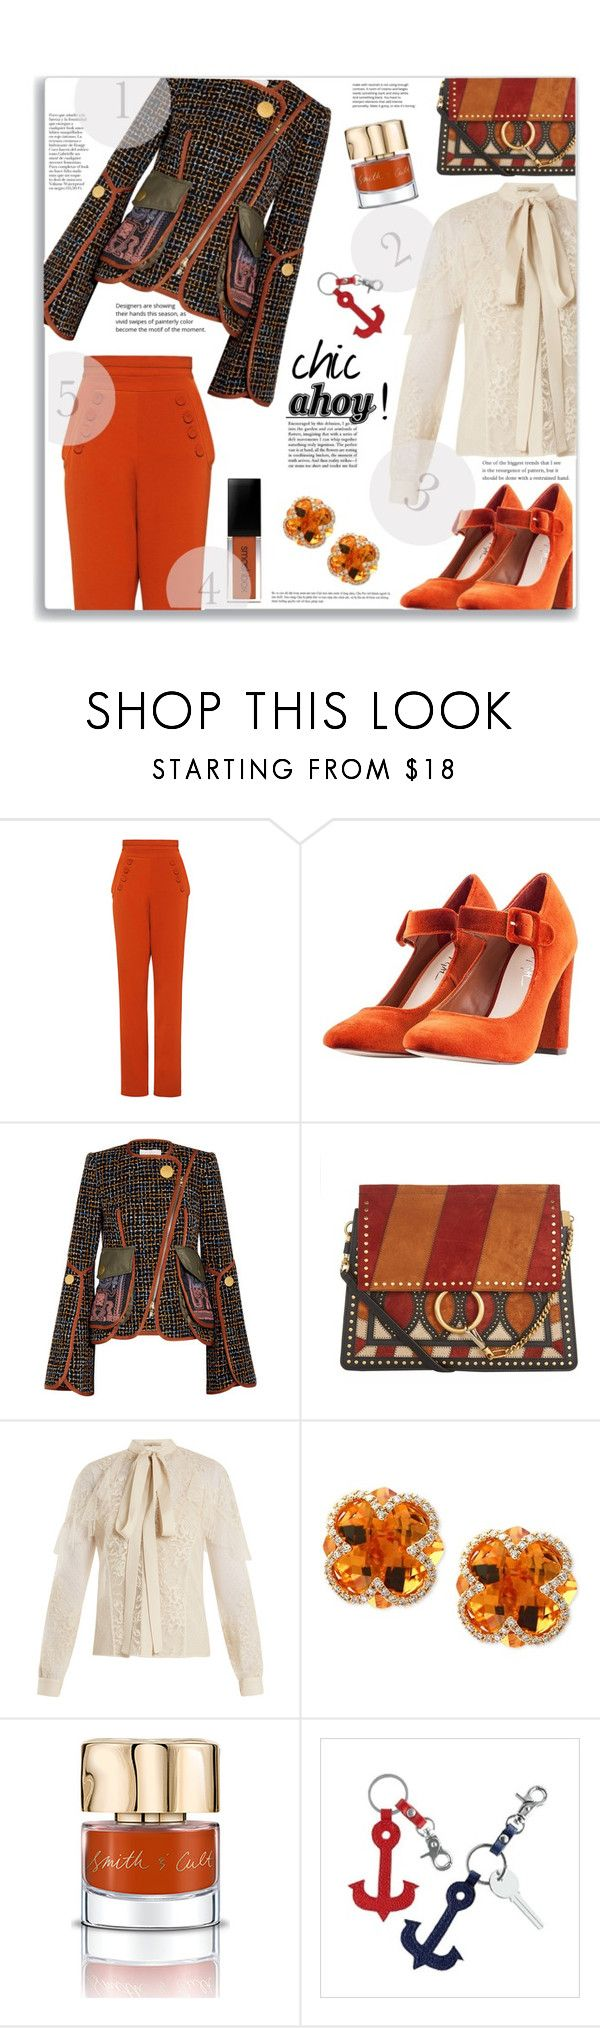 """""""Chic Ahoy !!"""" by jckallan ❤ liked on Polyvore featuring Finders Keepers, Nasty Gal, Peter Pilotto, Chloé, Elie Saab, Effy Jewelry, Smith & Cult, Mark & Graham, contestentry and SailorPants"""